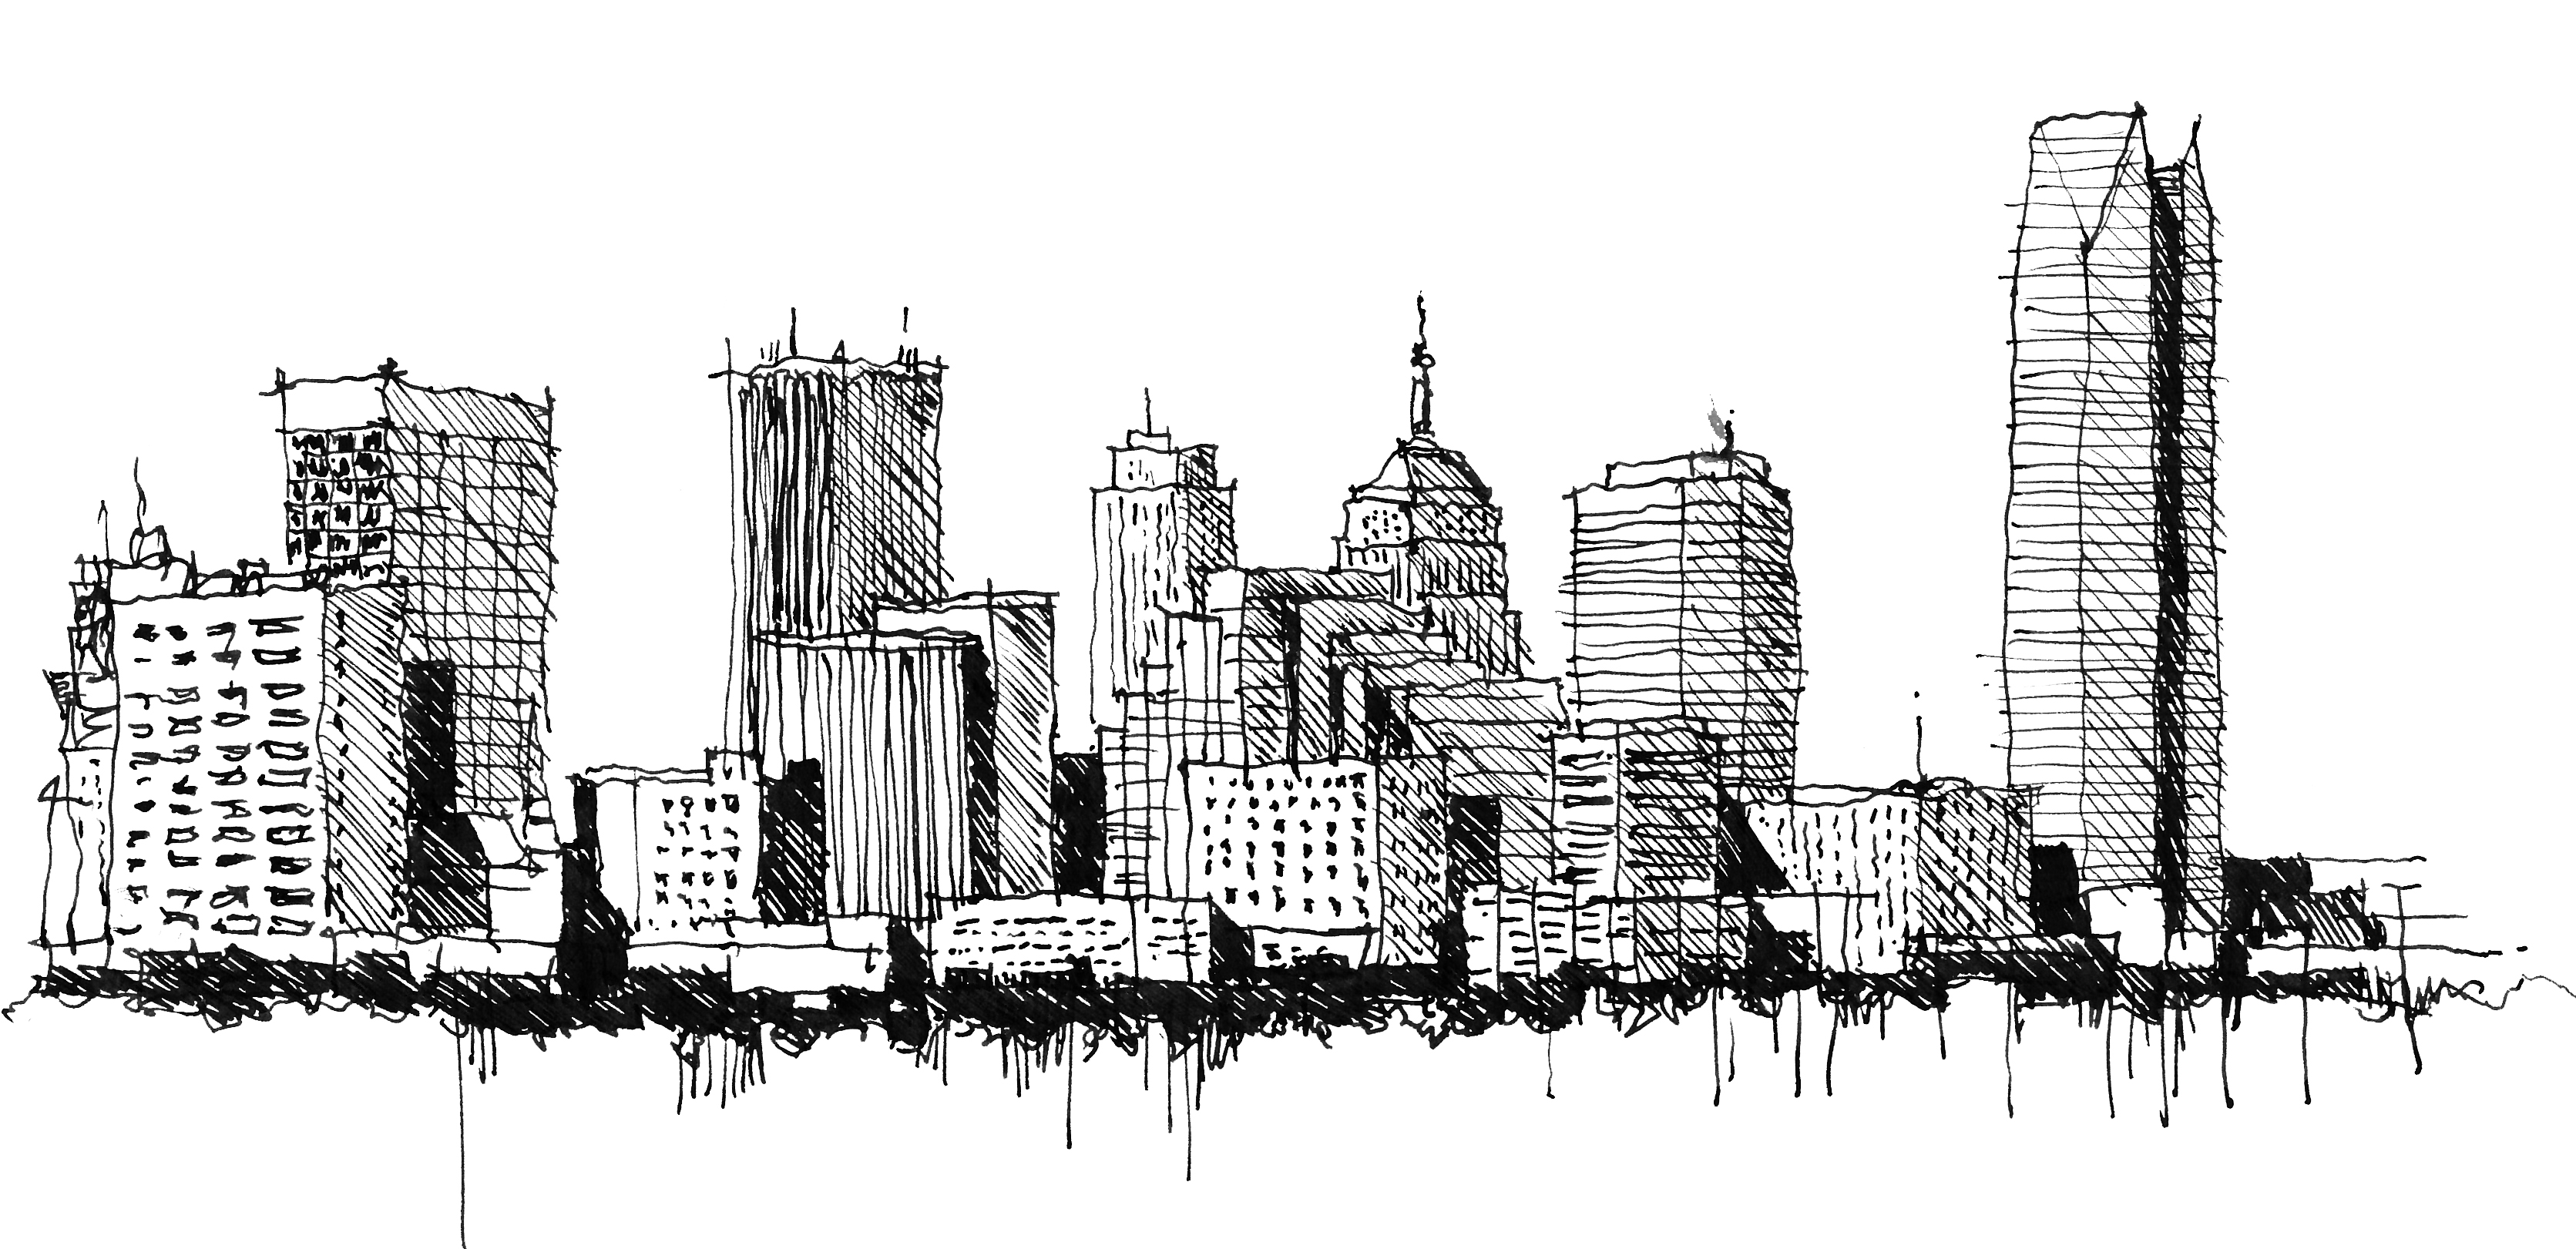 city skyline sketches - photo #23